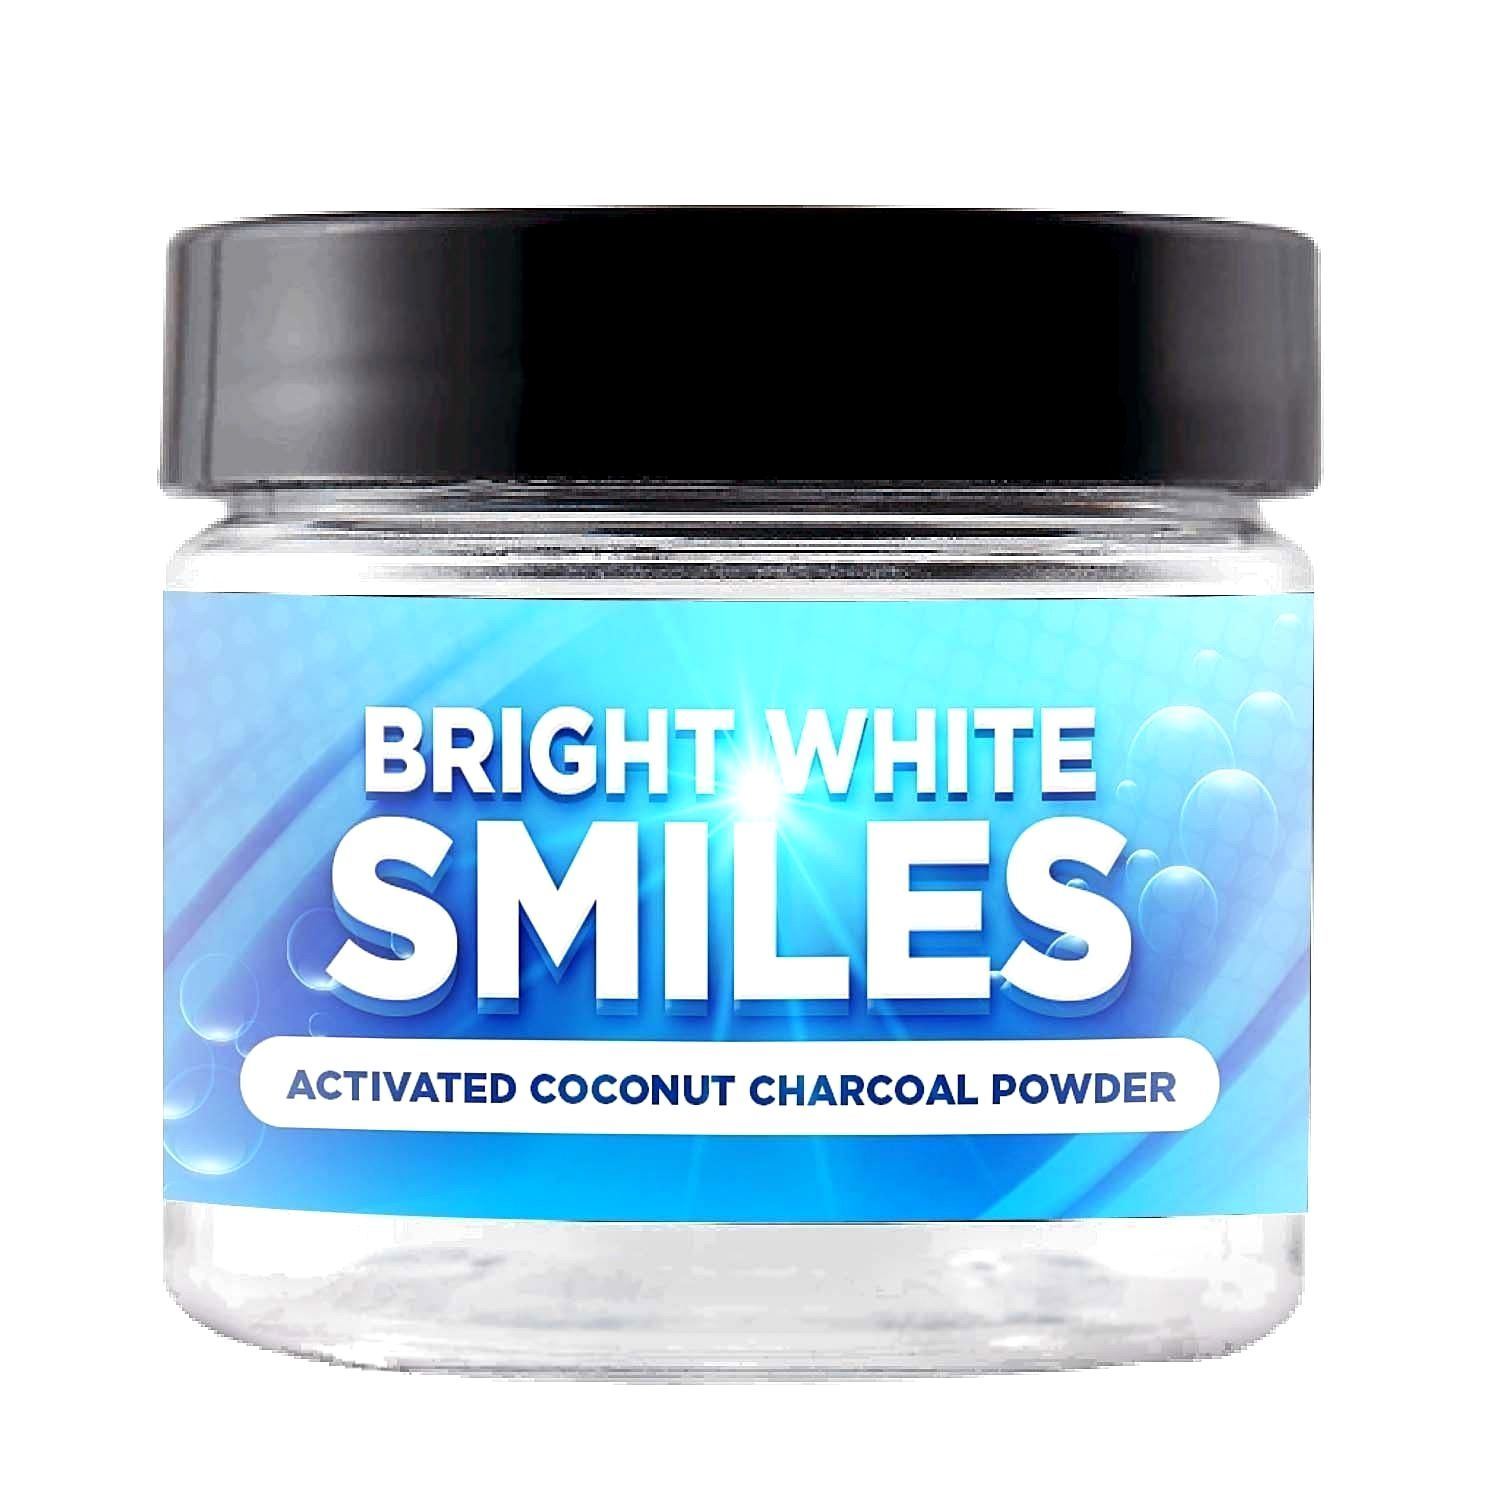 best teeth whitening 2018 #bestteethwhitening white light teeth whitening unwanted effects #systems #at #how #safe #diy #to #did #clean #instant #bestteethwhitening